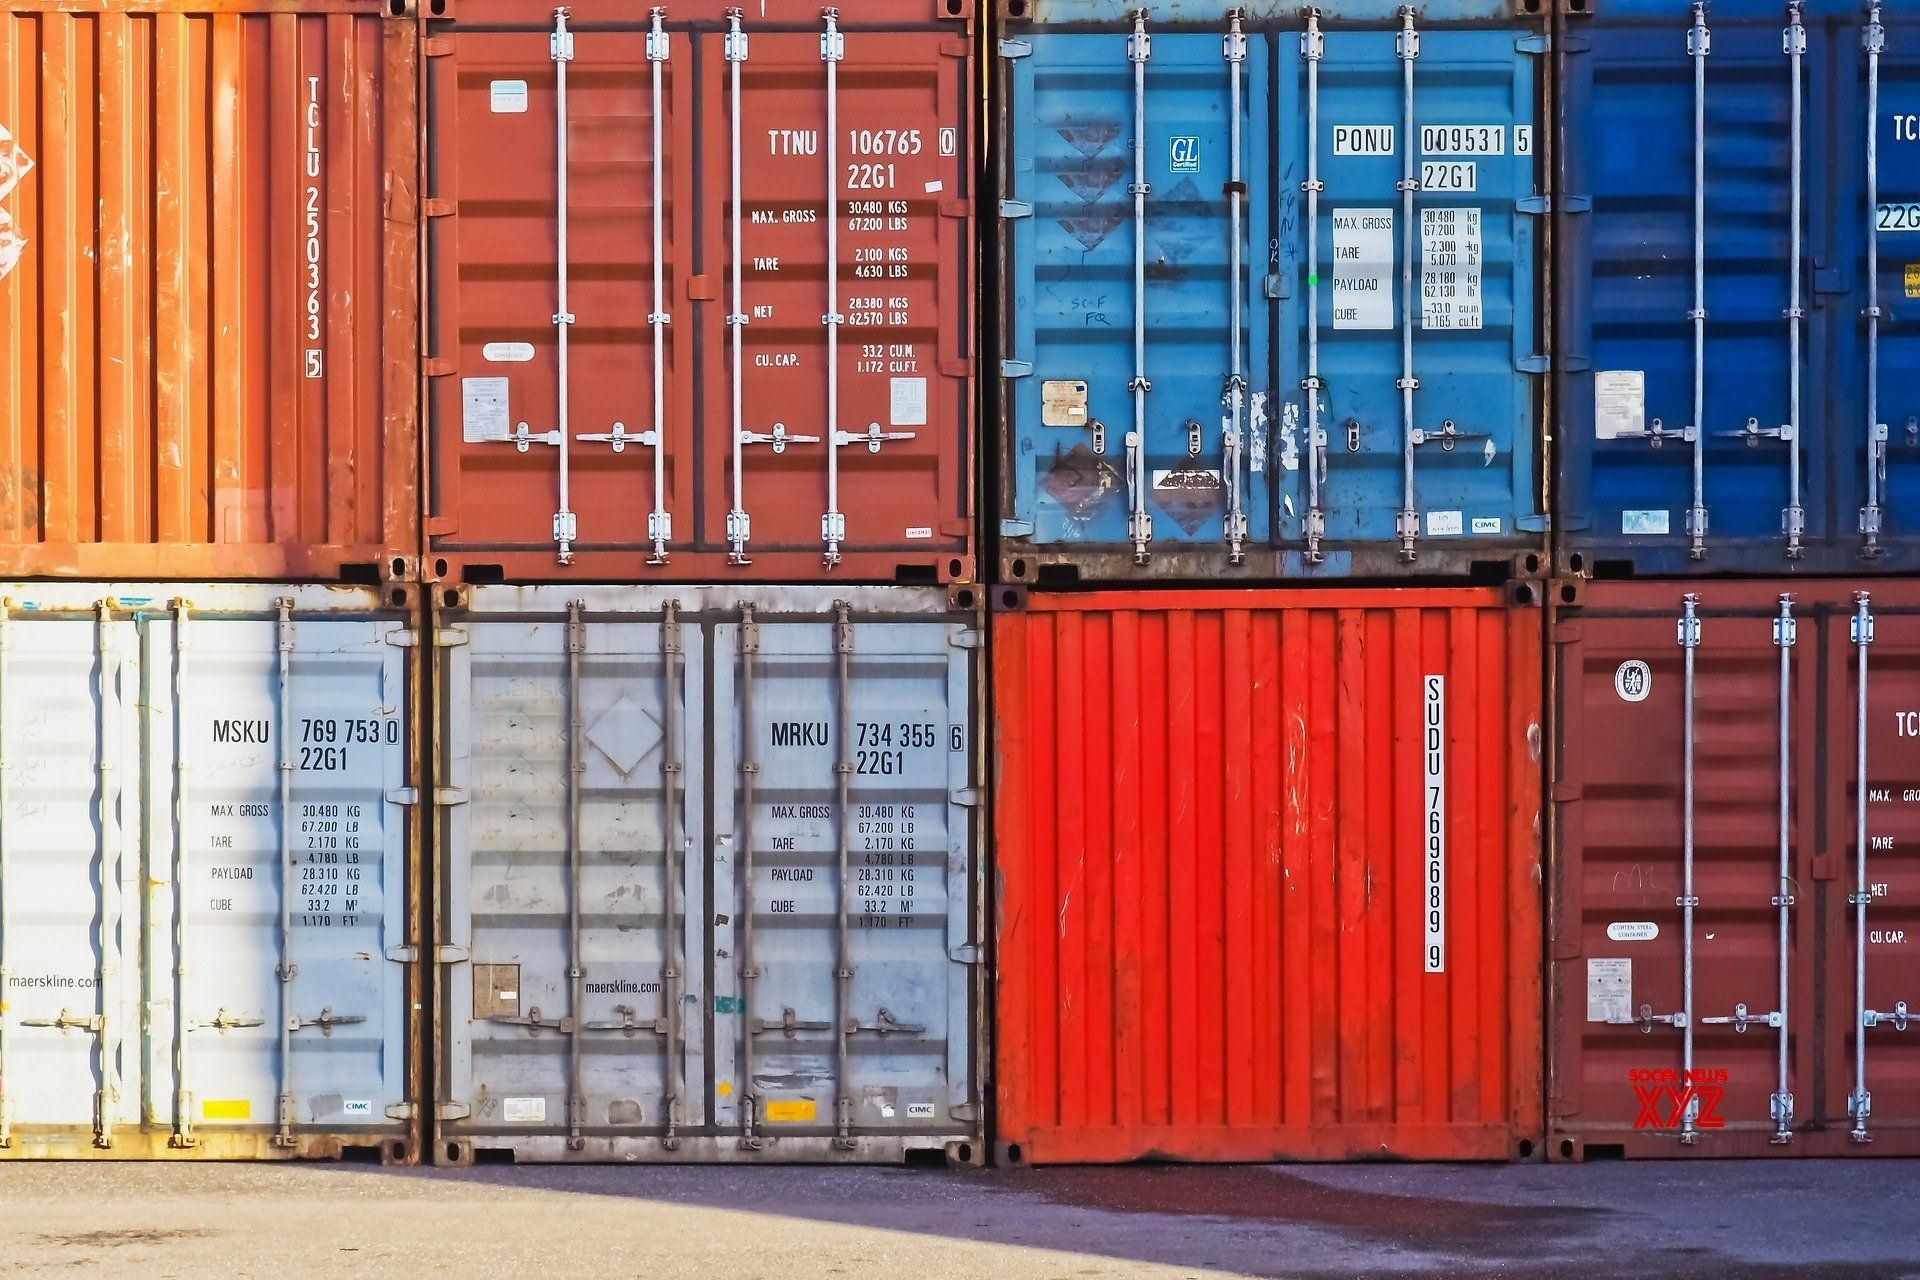 India S July Merchandise Exports Rise 2 25 Social News Xyz Shipping Container Storage Unit Storage